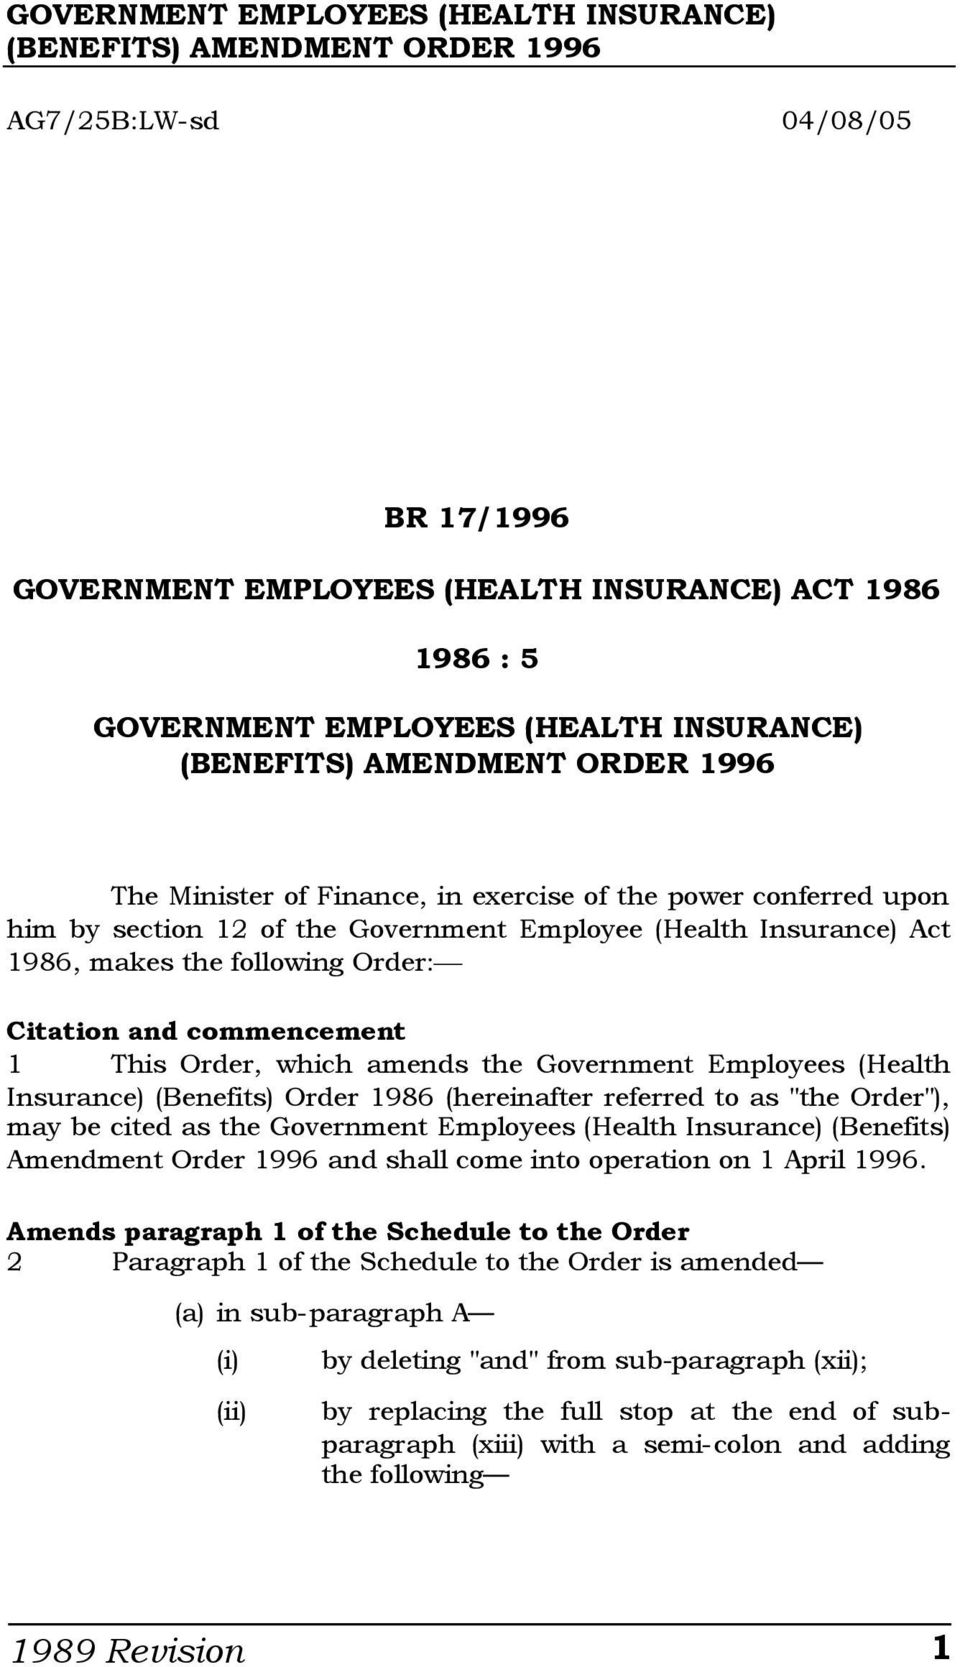 "(Benefits) Order 1986 (hereinafter referred to as ""the Order""), may be cited as the Government Employees (Health Insurance) (Benefits) Amendment Order 1996 and shall come into operation on 1 April"